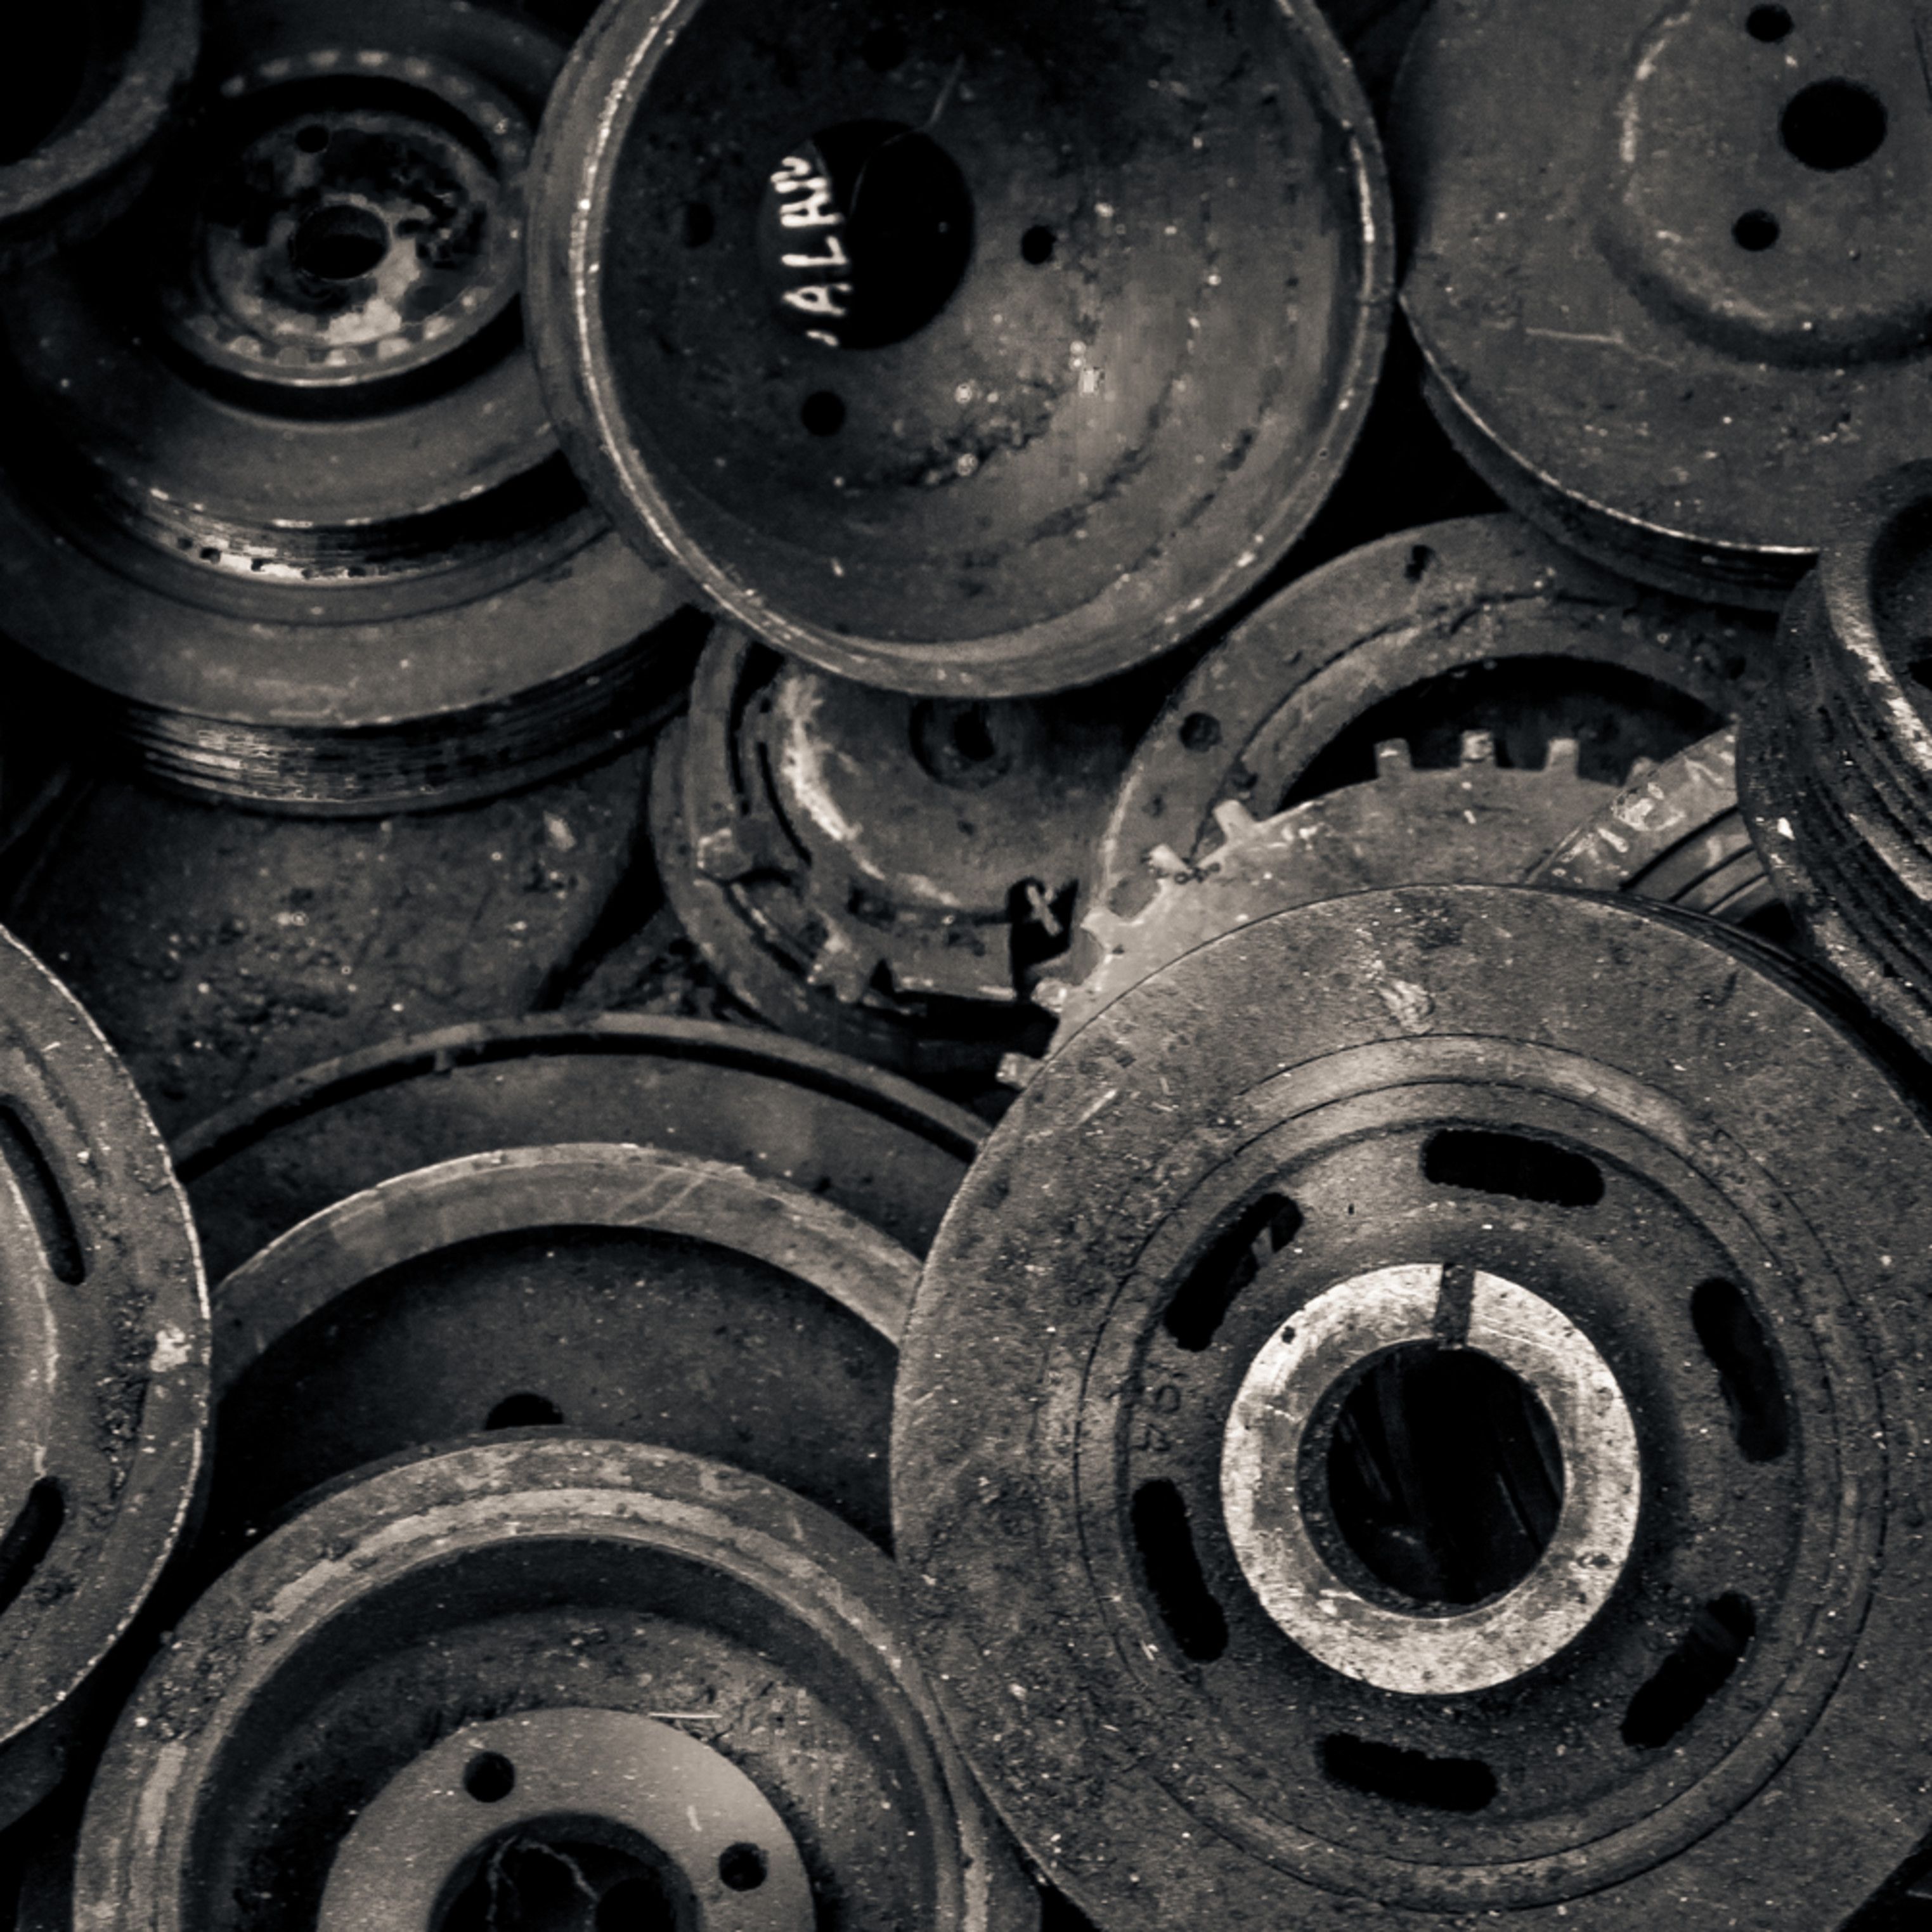 Scrap yard wheels cogs and gears loyz28